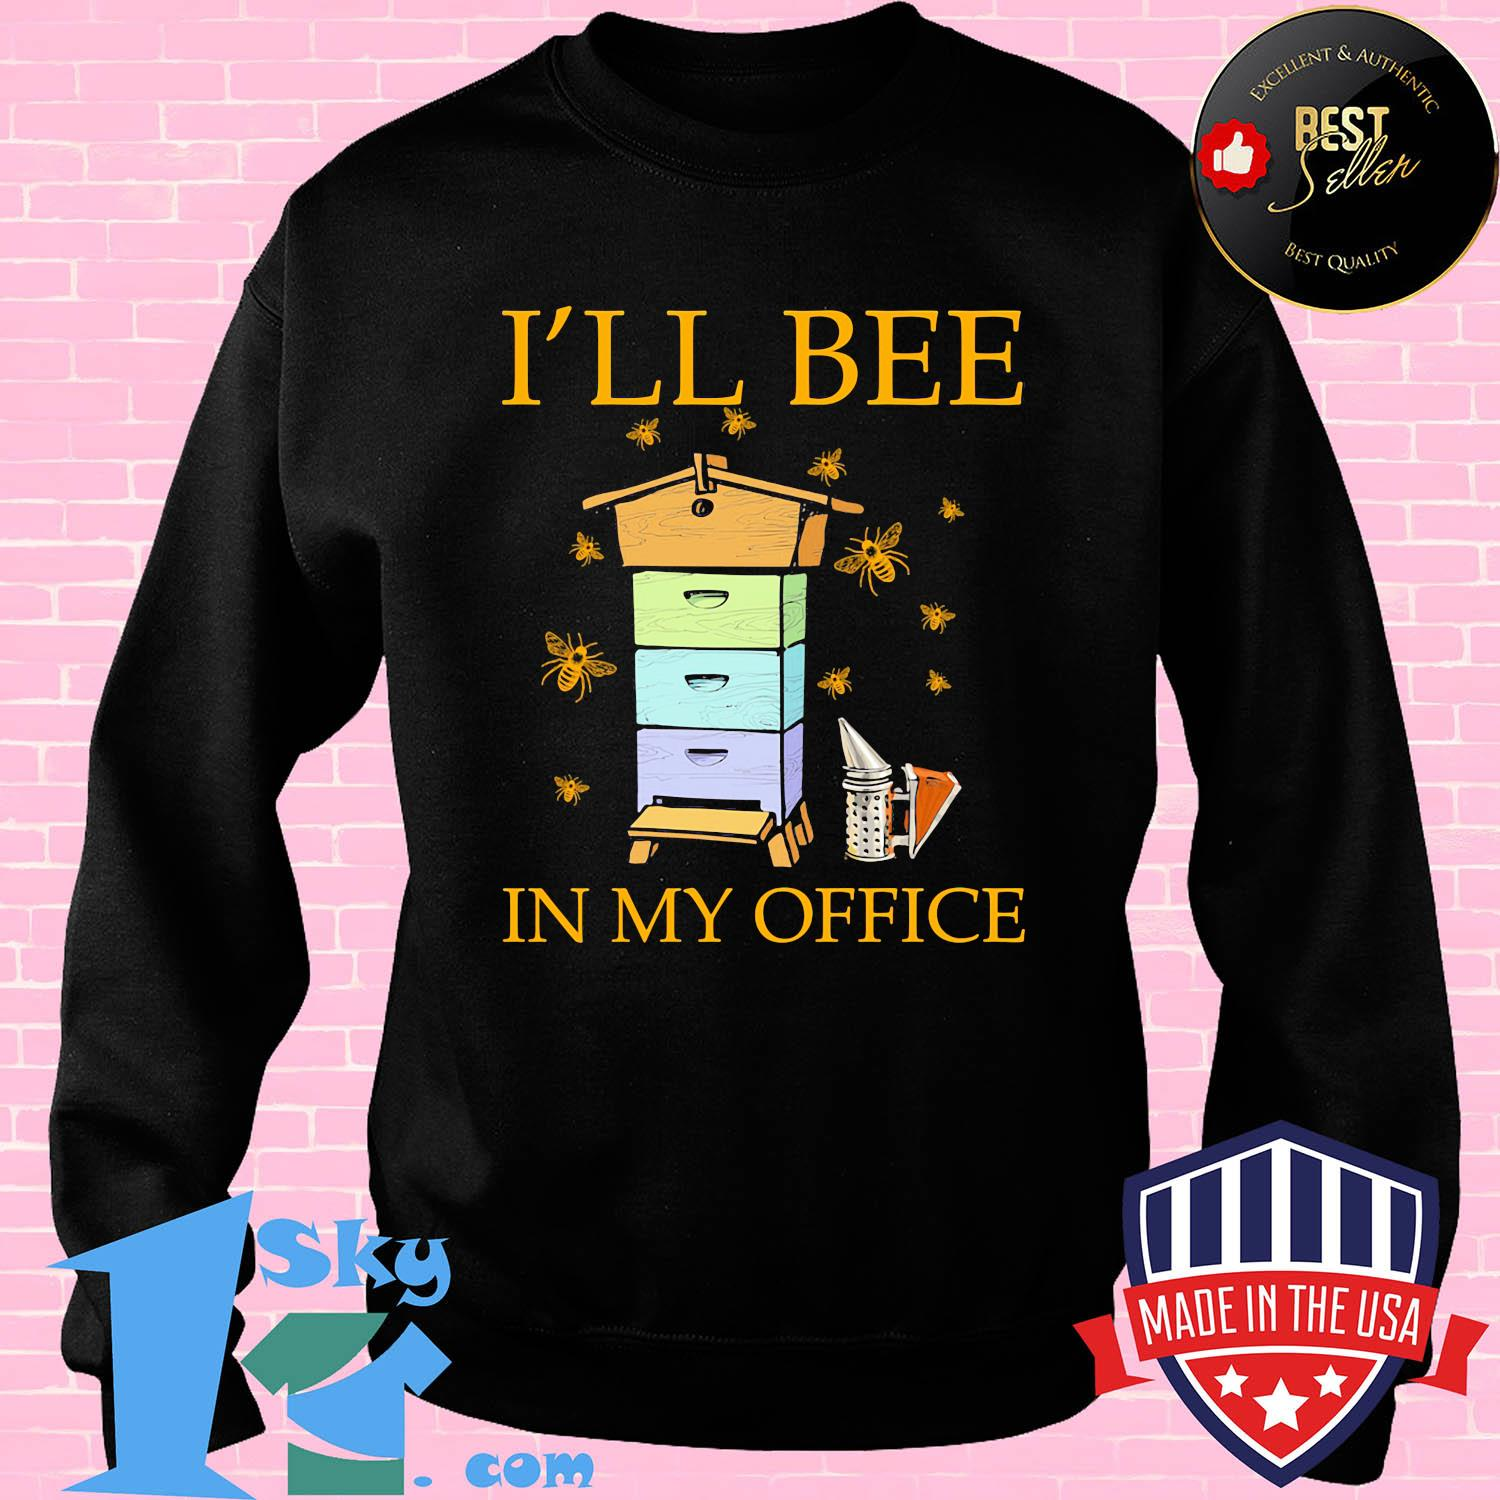 I'll bee in my office shirt